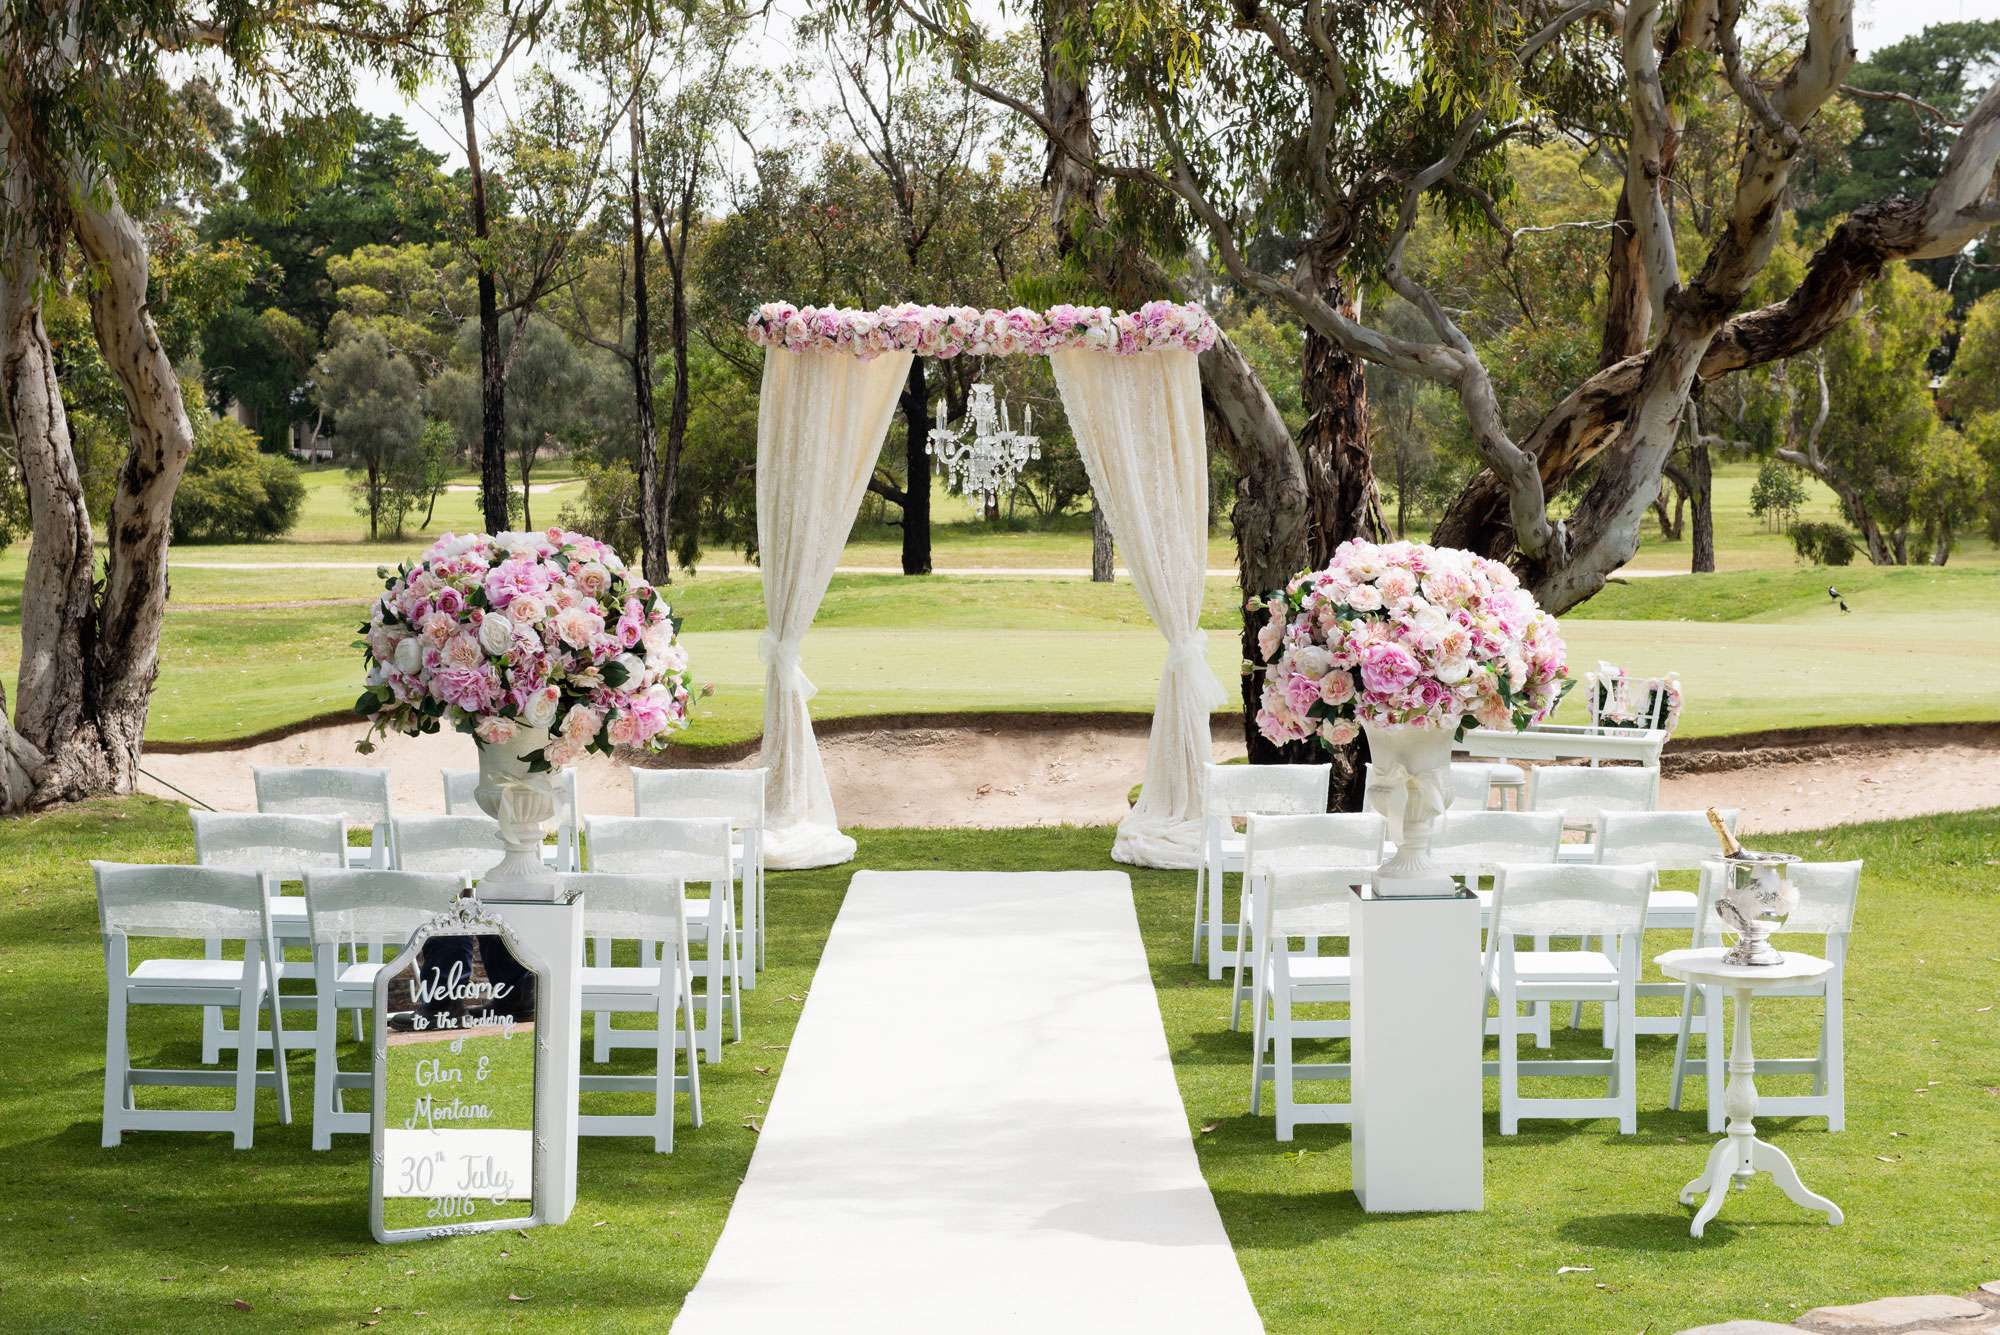 Adelaide wedding ceremonies wedding ceremony stylist experts adelaide wedding ceremonies event stylist wedding designer adminew 2017 09 08t0544060000 junglespirit Gallery